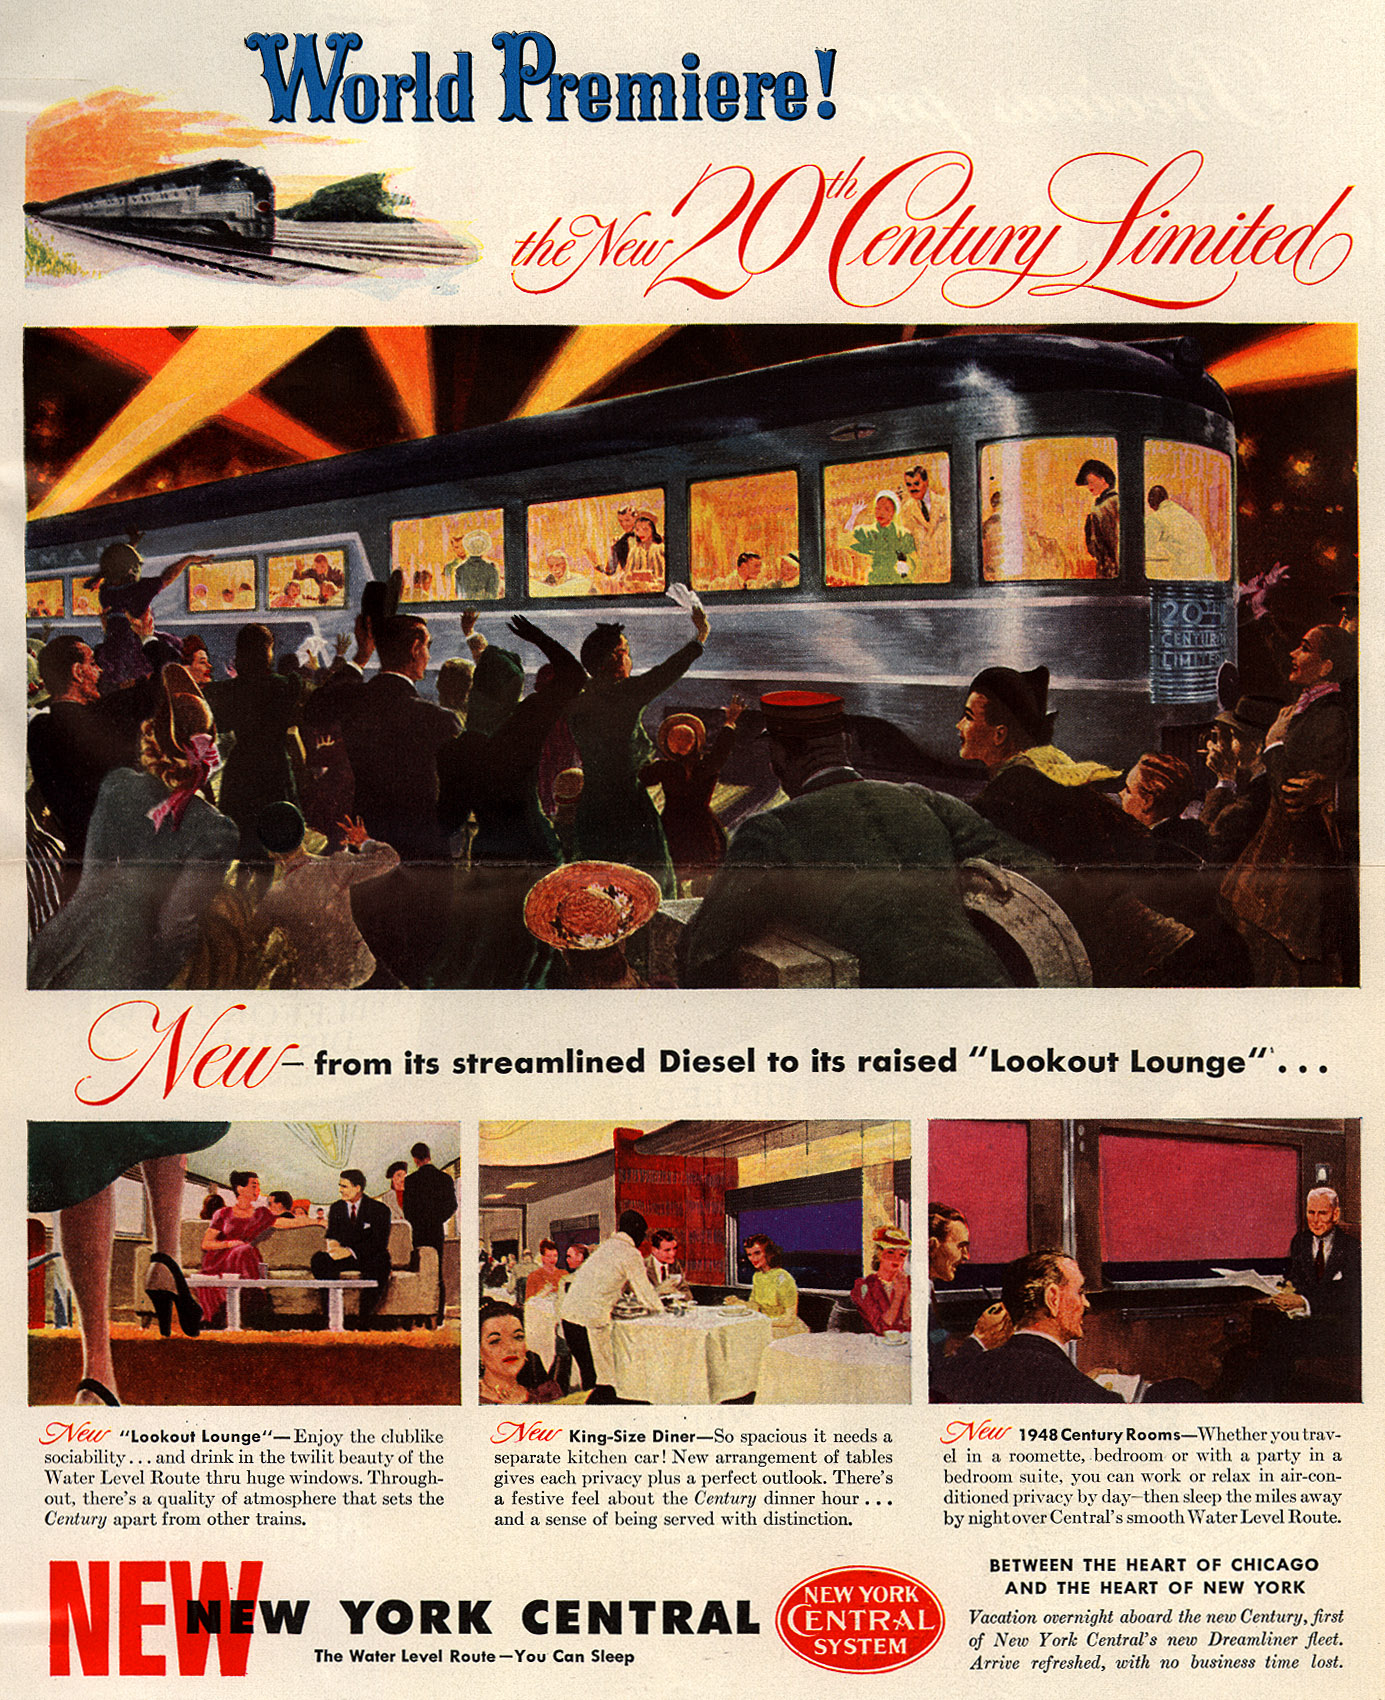 Advertising The 20th Century Limited